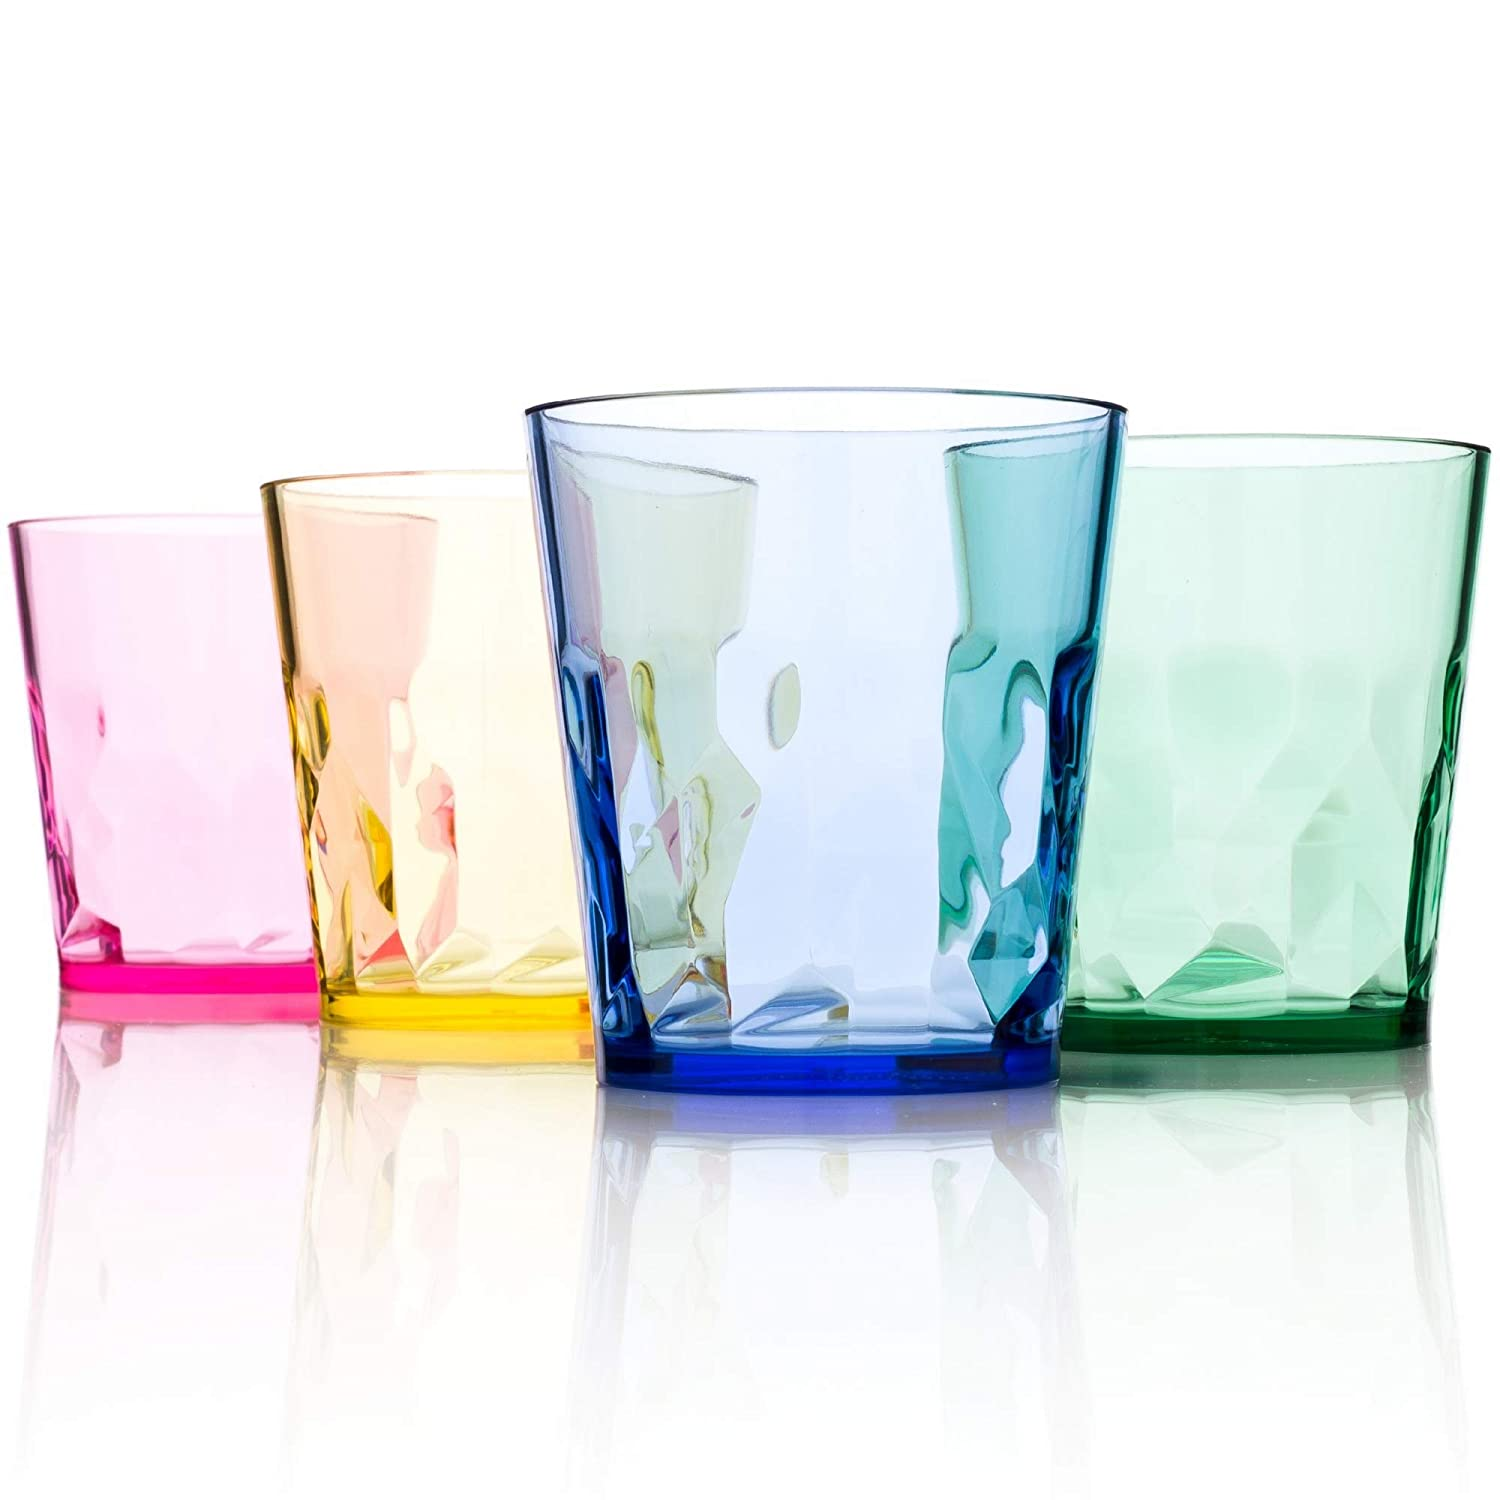 8 oz Unbreakable Premium Juice Glasses - Set of 4 - Tritan Plastic Cups - BPA Free - 100% Made in Japan (Assorted Colors)